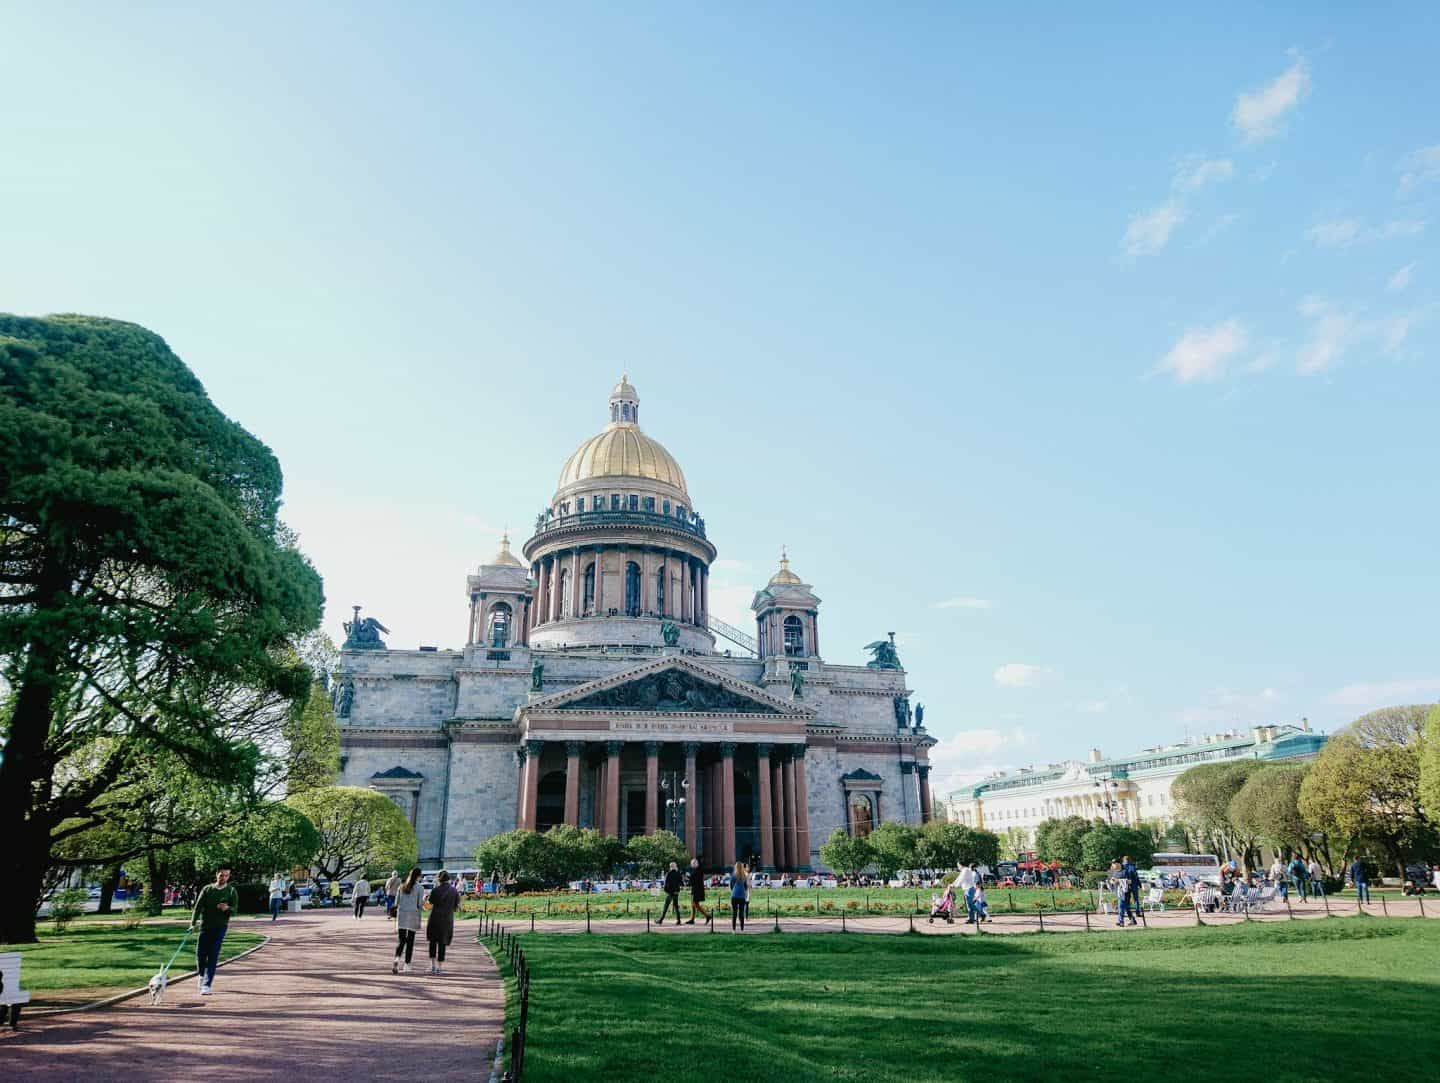 St. Isaac's Cathedral, one of the iconic sights of St. Petersburg